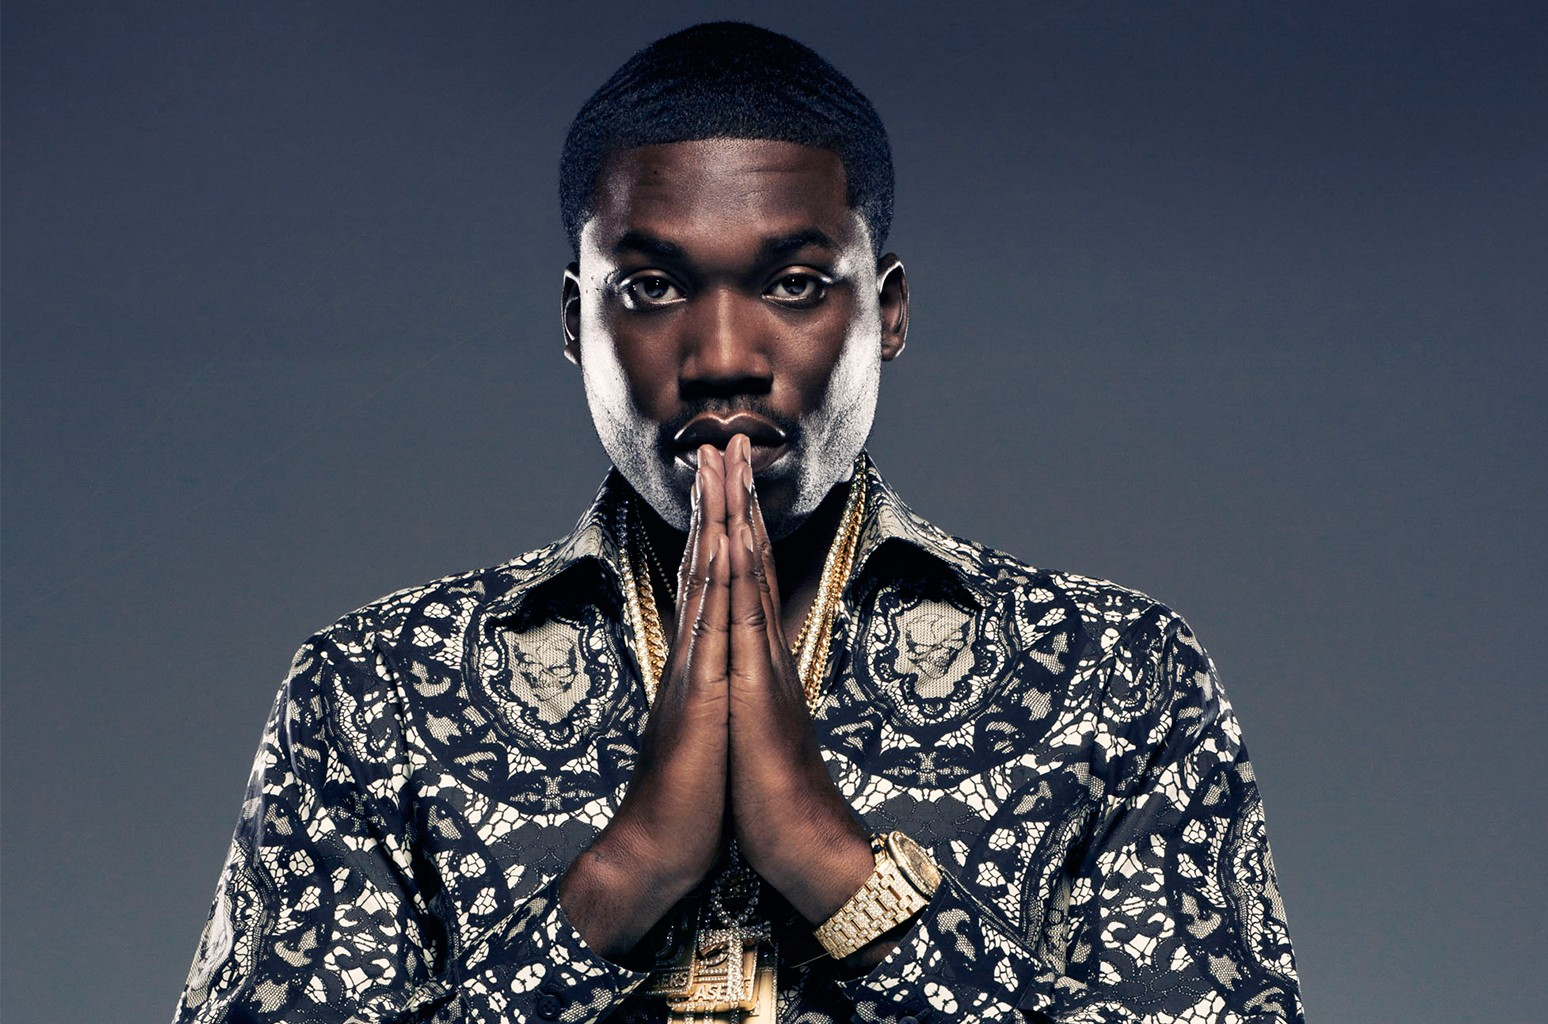 Bet on tour with meek mill celtics vs nets betting predictions